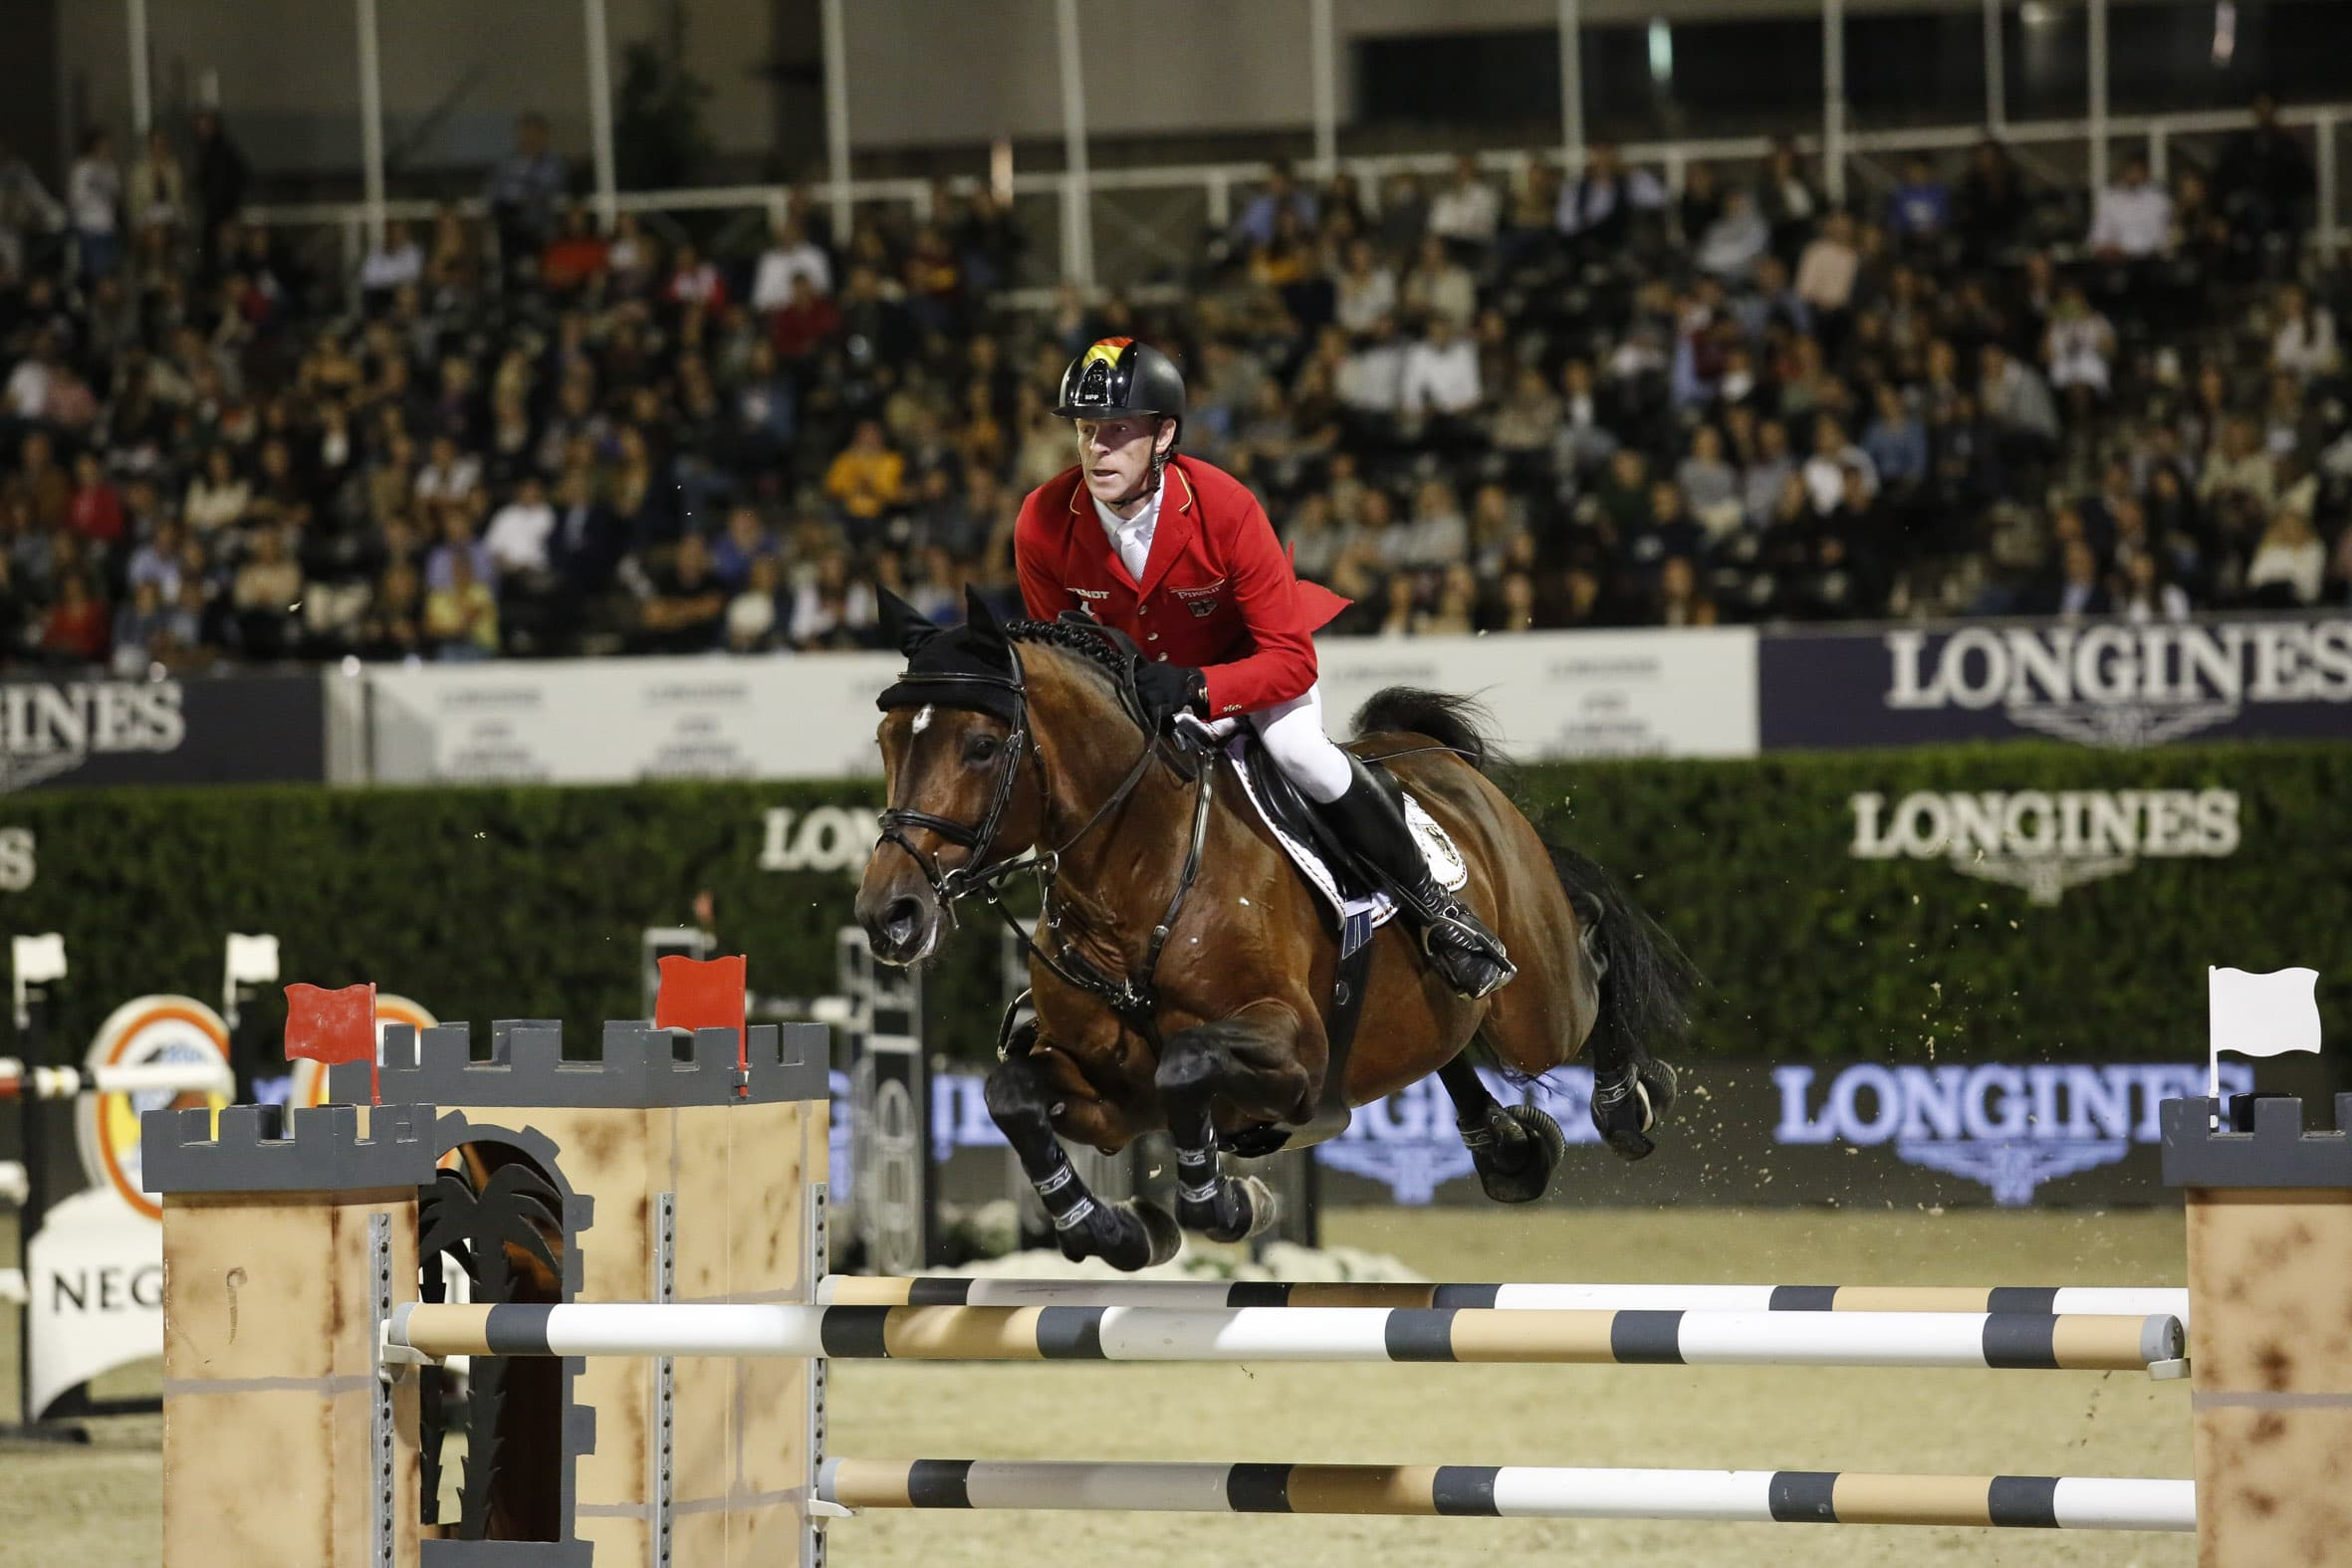 CSIO BARCELONA 108 – Longines FEI Jumping Nations Cup Final